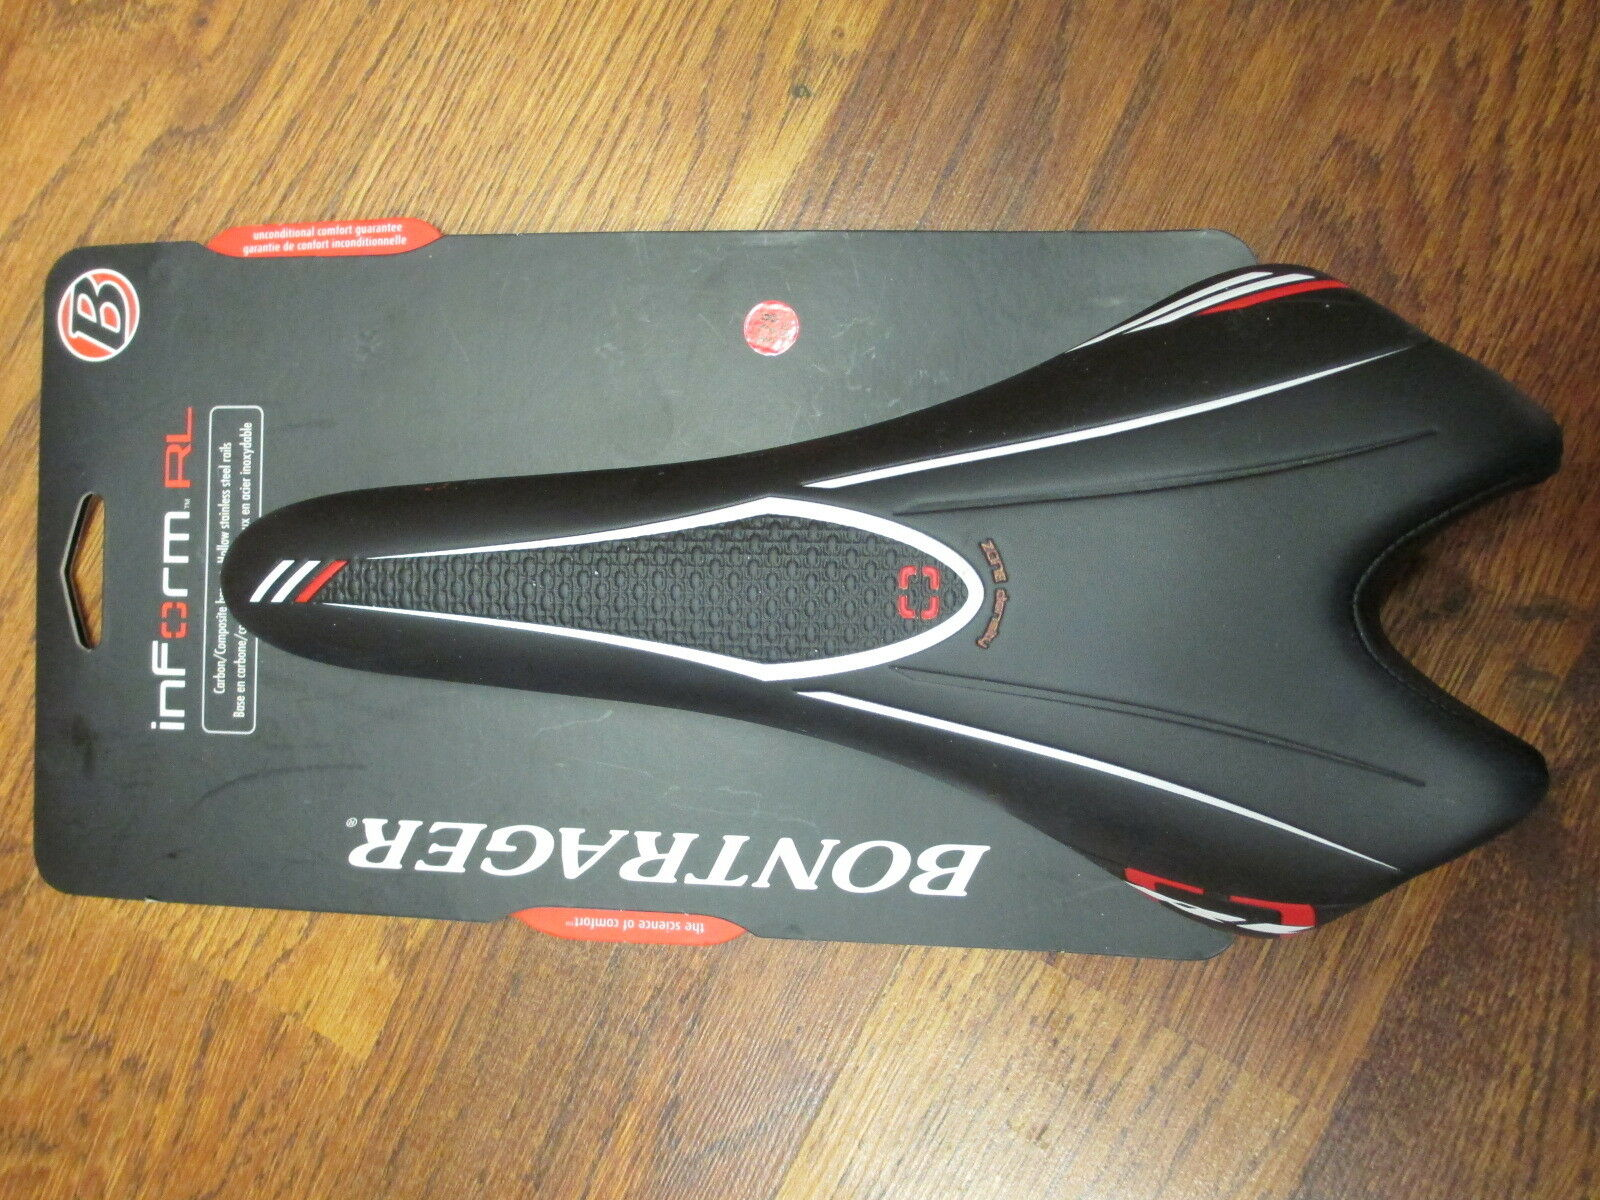 BONTRAGER INFORM RL 128 HOLLOW STAINLESS STEEL RAILED RACING SADDLE